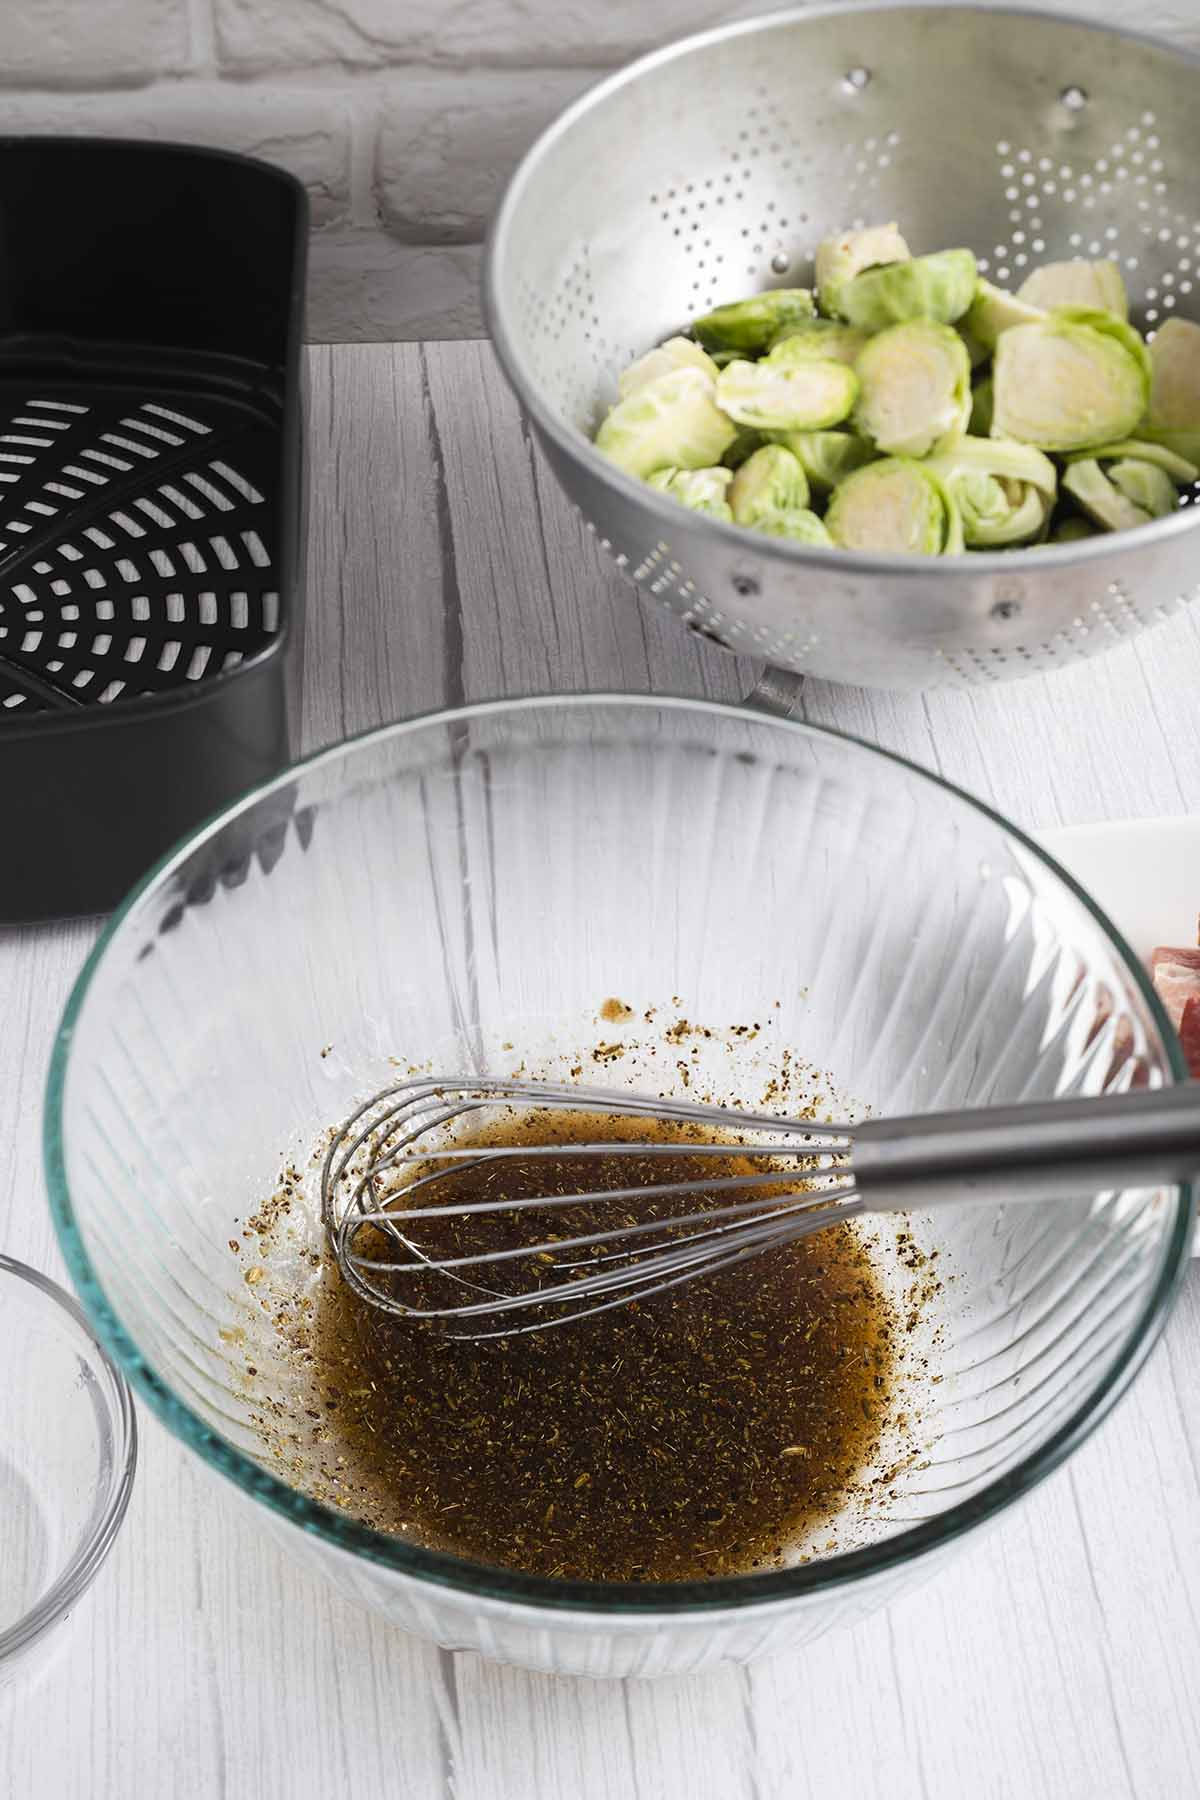 stir brussels sprouts sauce mix